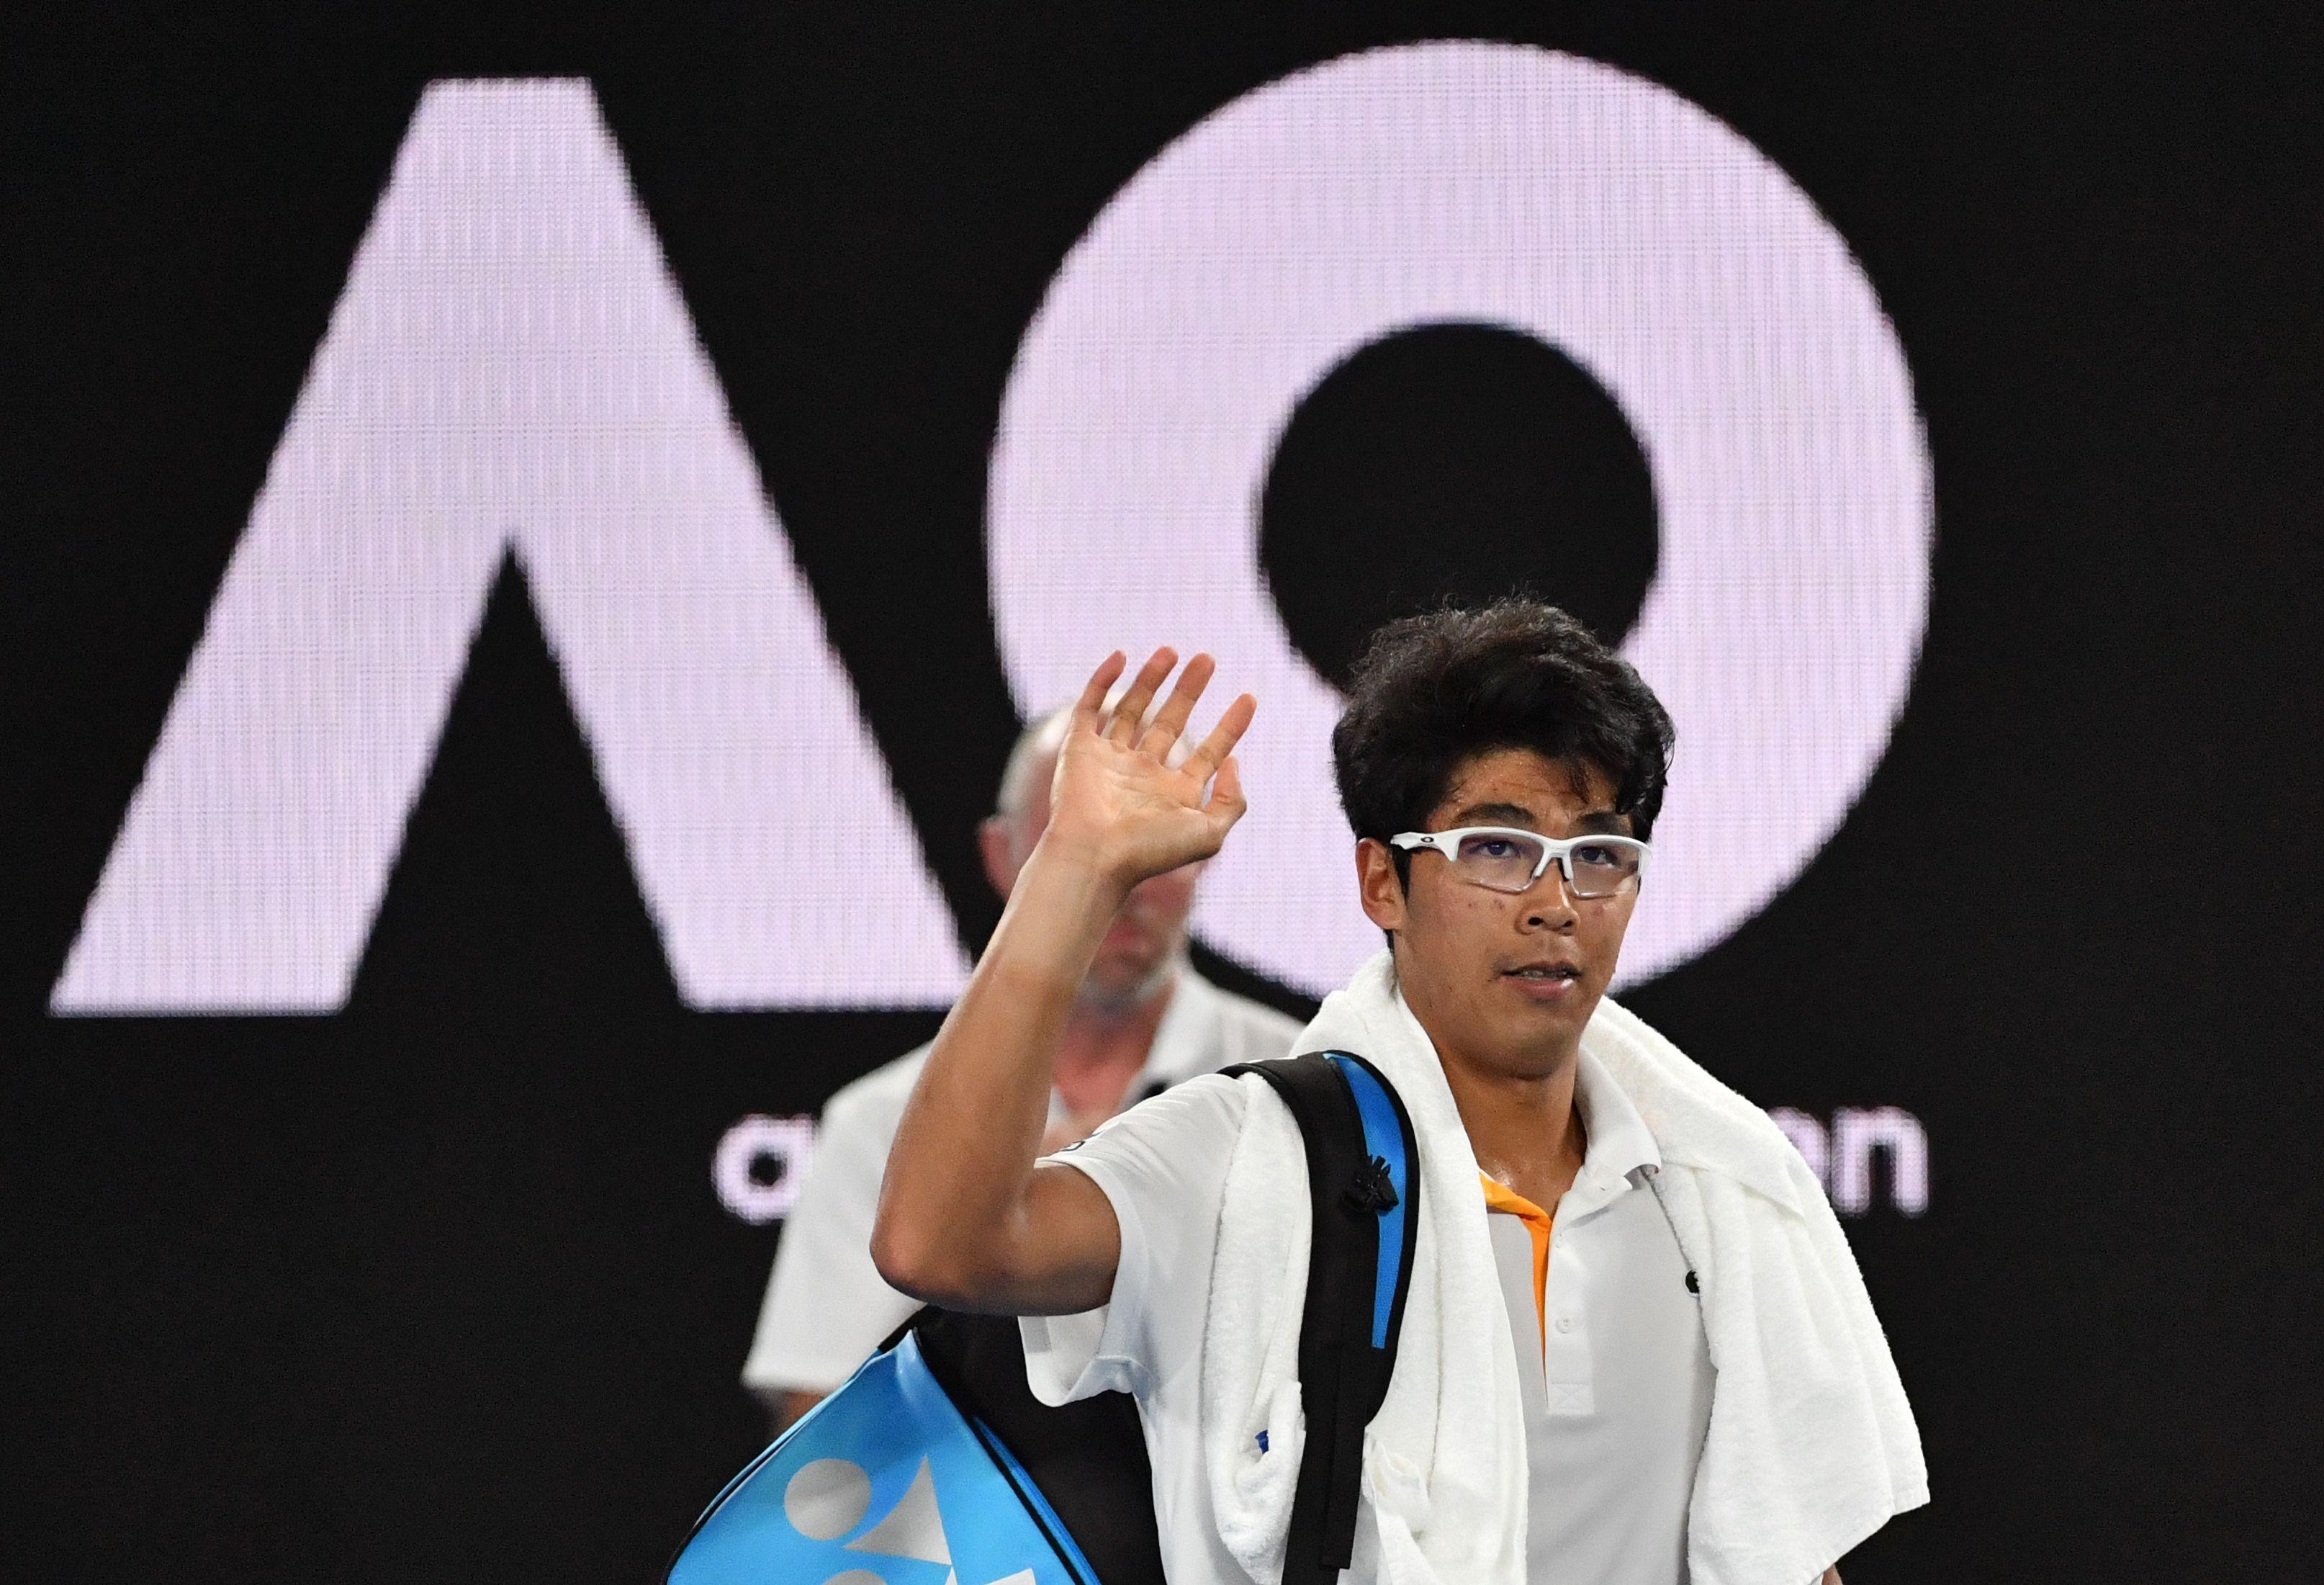 Chung Hyeon waves to crowd following retirement due to blisters